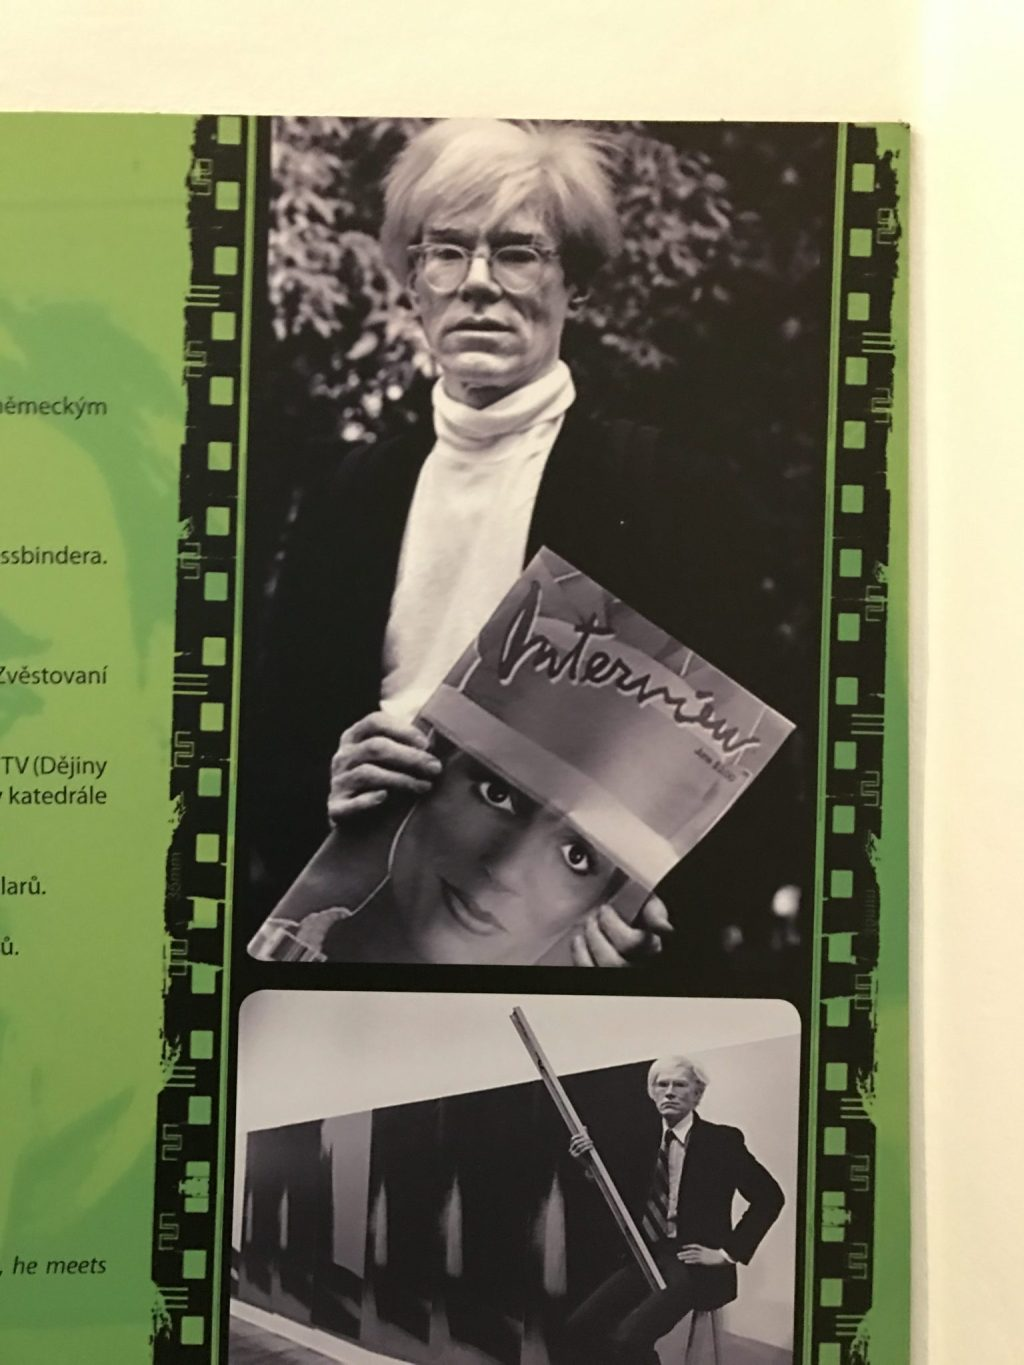 Poster of Andy Warhol Holding a Copy of Interview Magazine Which He Founded in 1969 With John Wilcock.